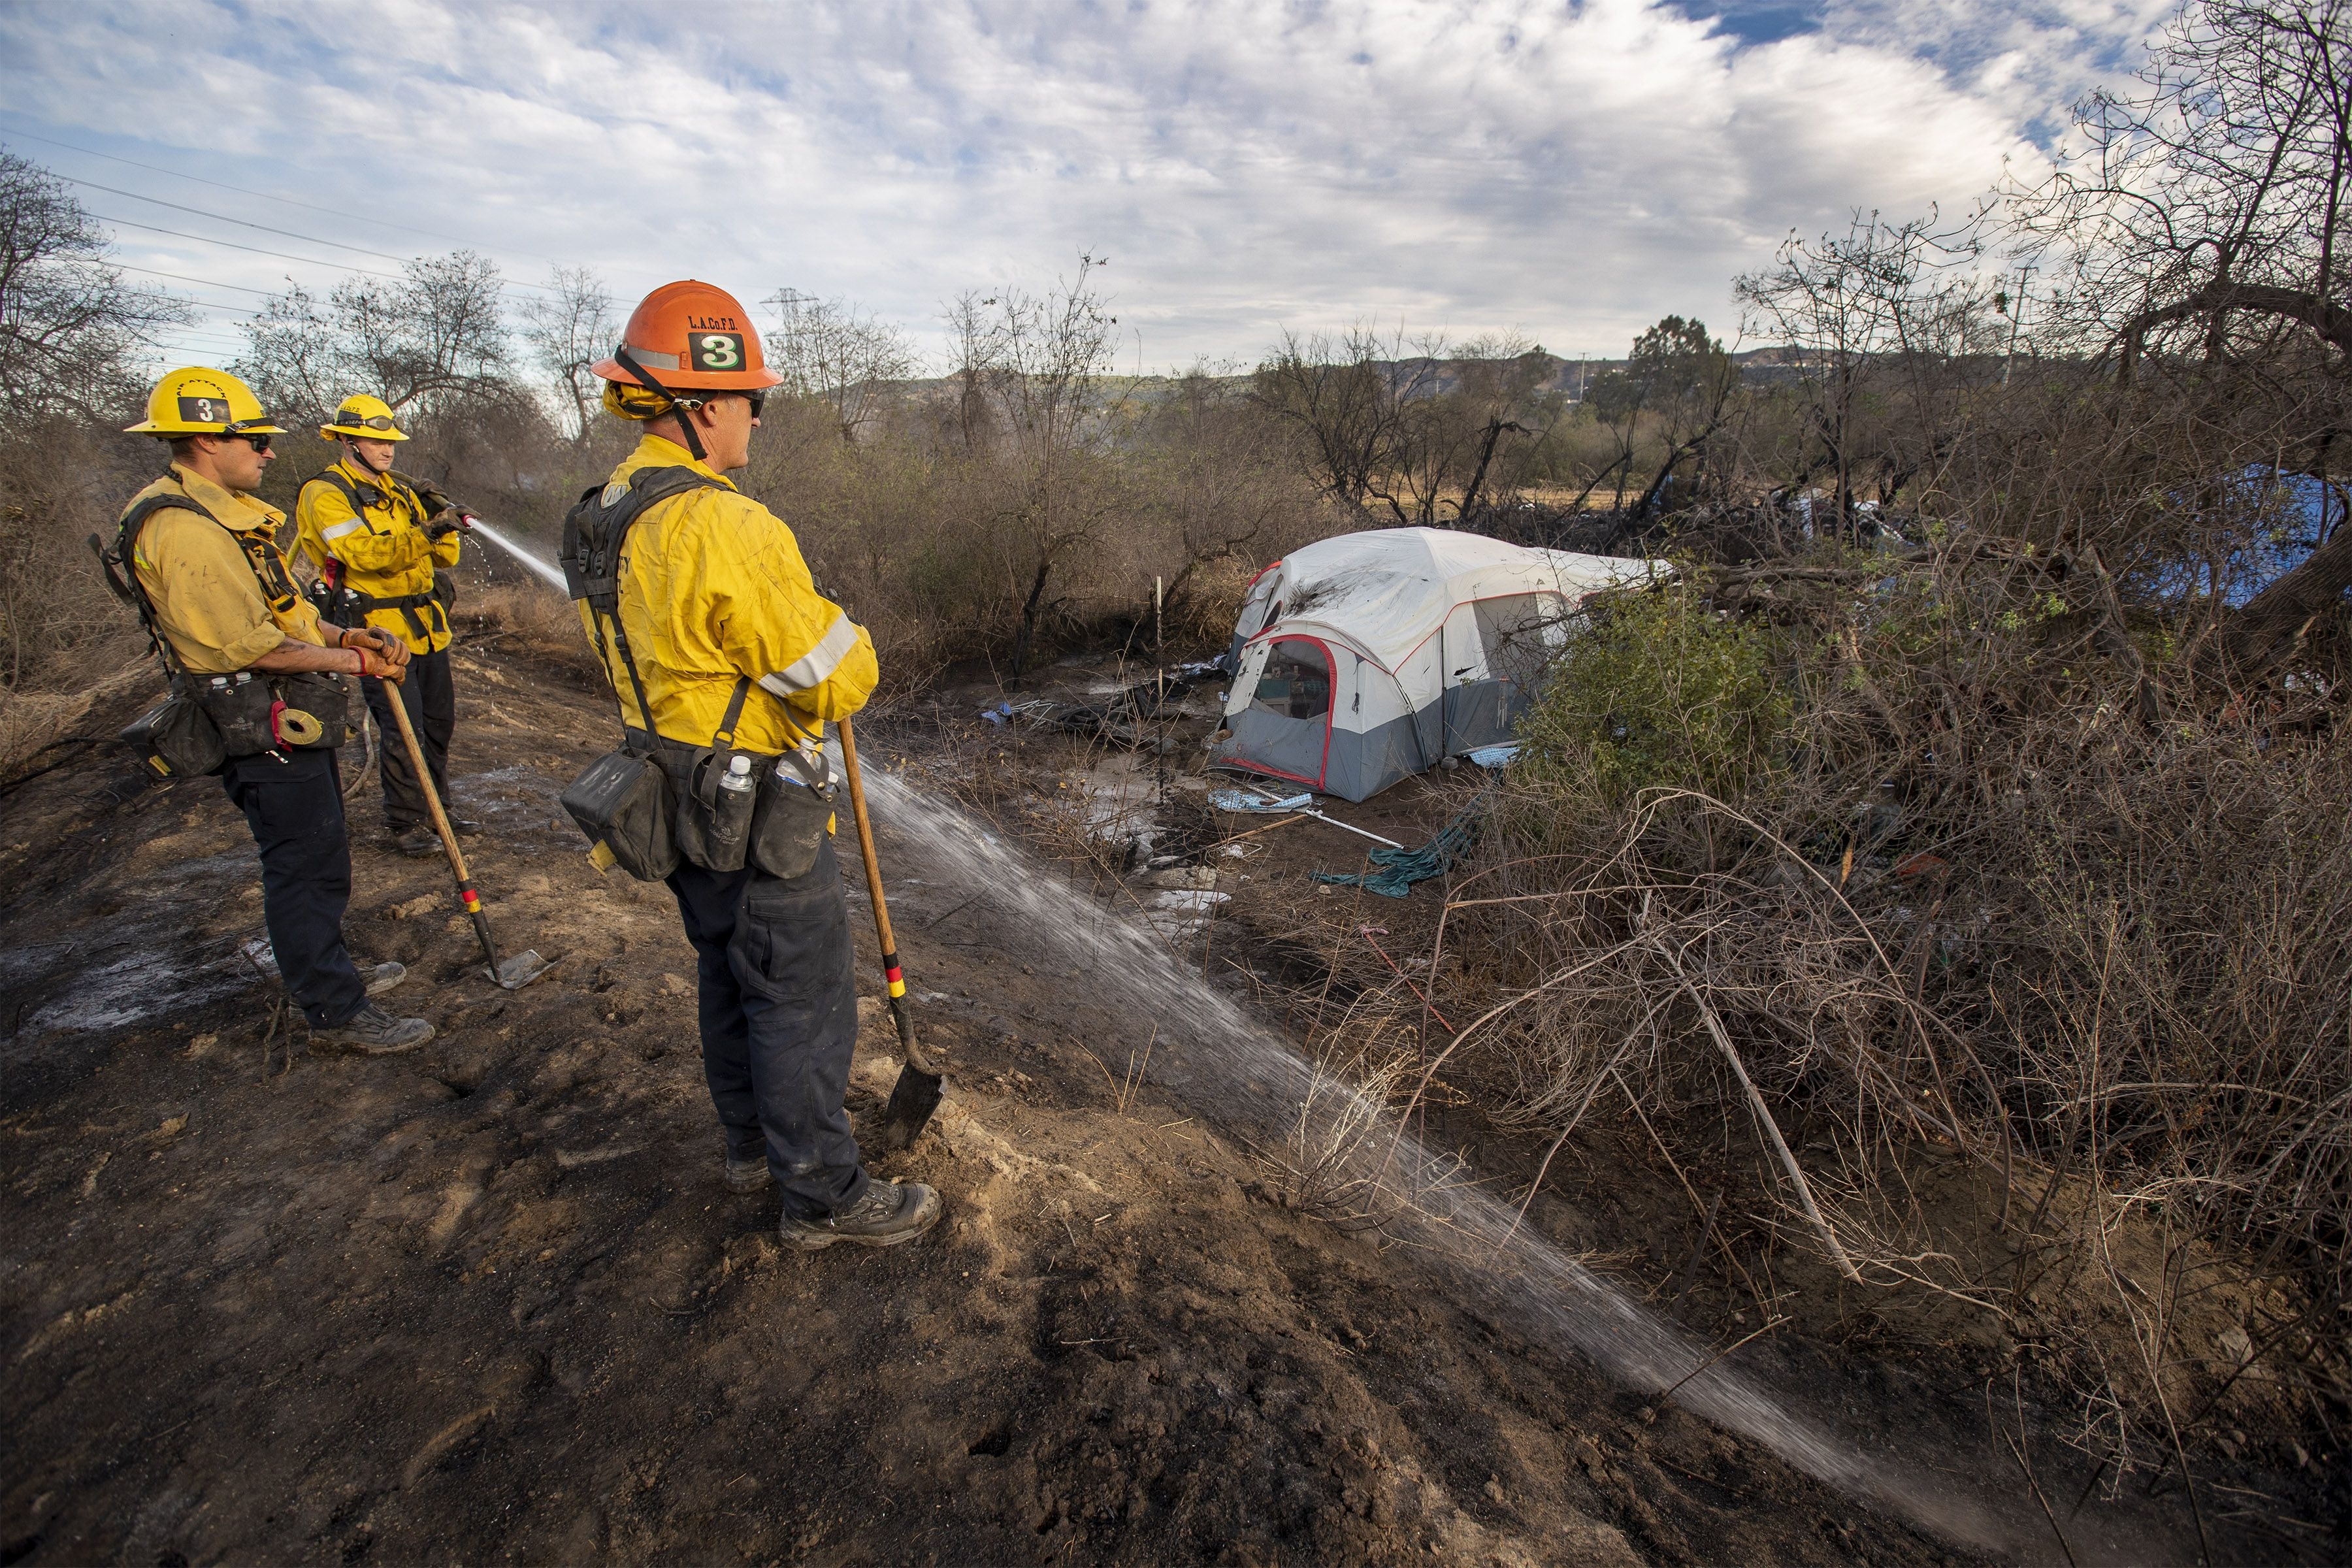 Los Angeles County Fire Dept. firefighters put out a hot spot in the Durfee Fire that spread to a homeless encampment in the Whittier Narrows Recreation Area in South El Monte, on Tuesday, Dec. 8